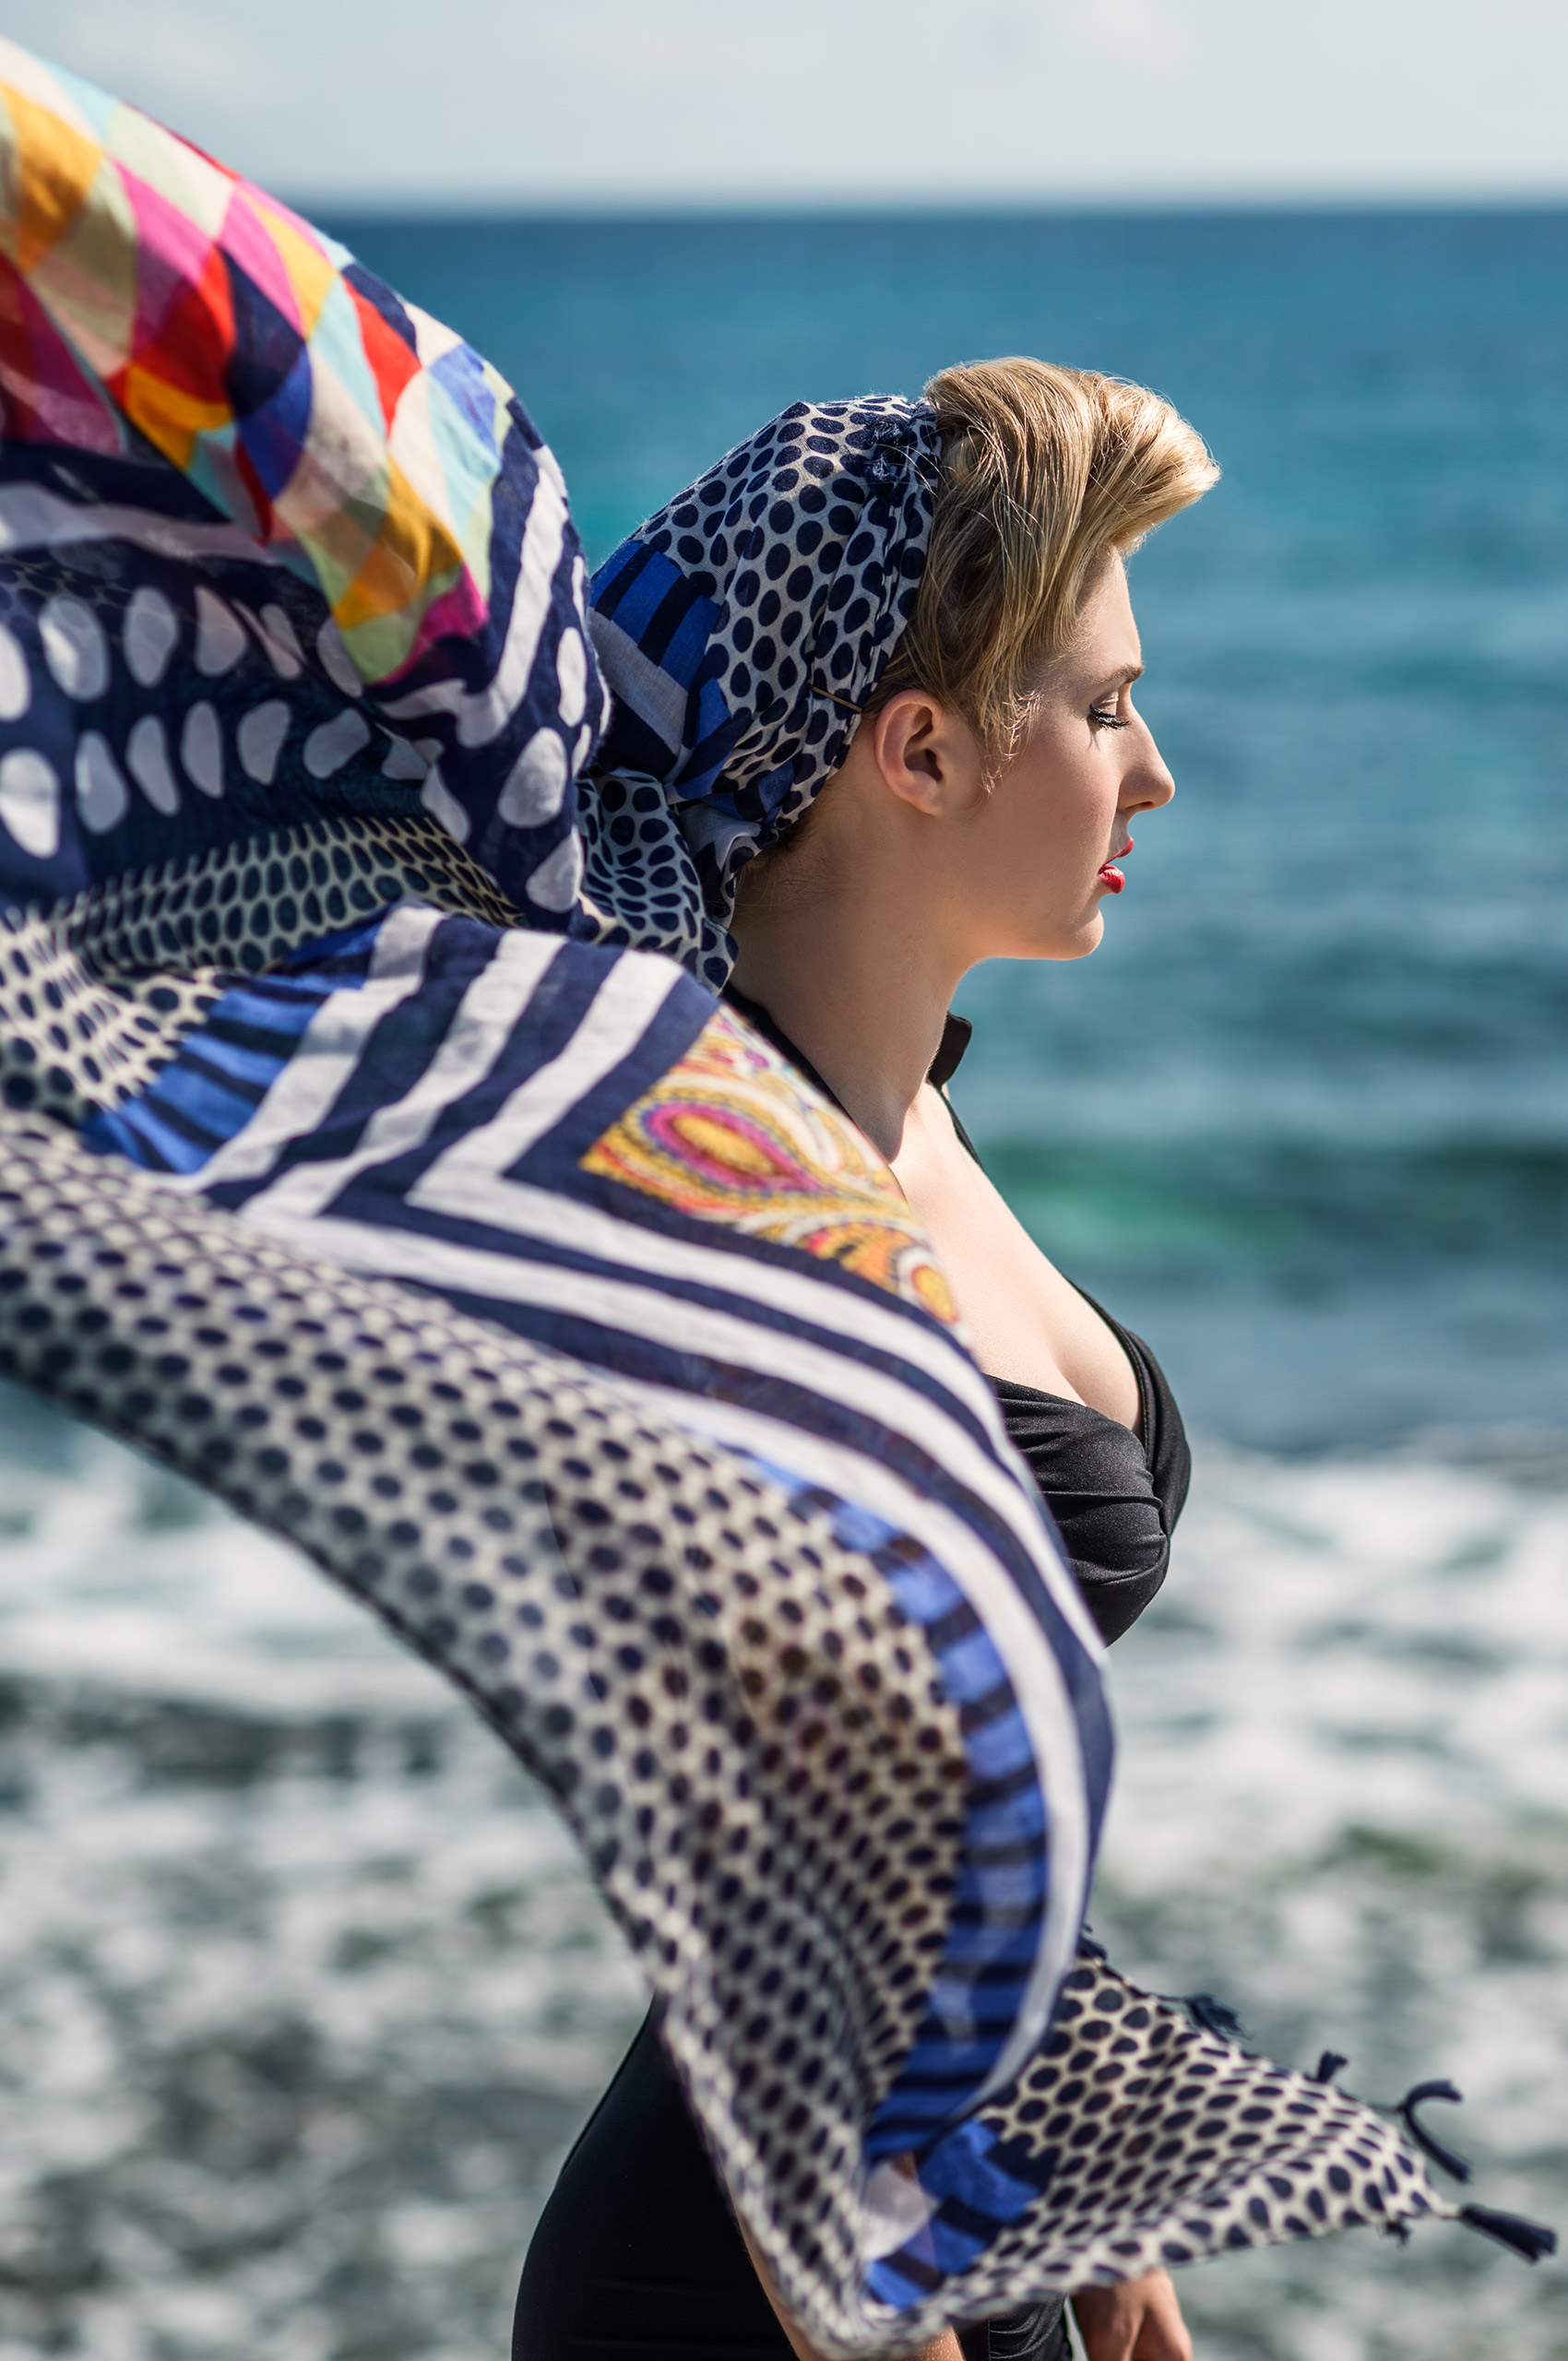 Woman-with-Scarf-by-sea-HenrikOlundPhotography.jpg